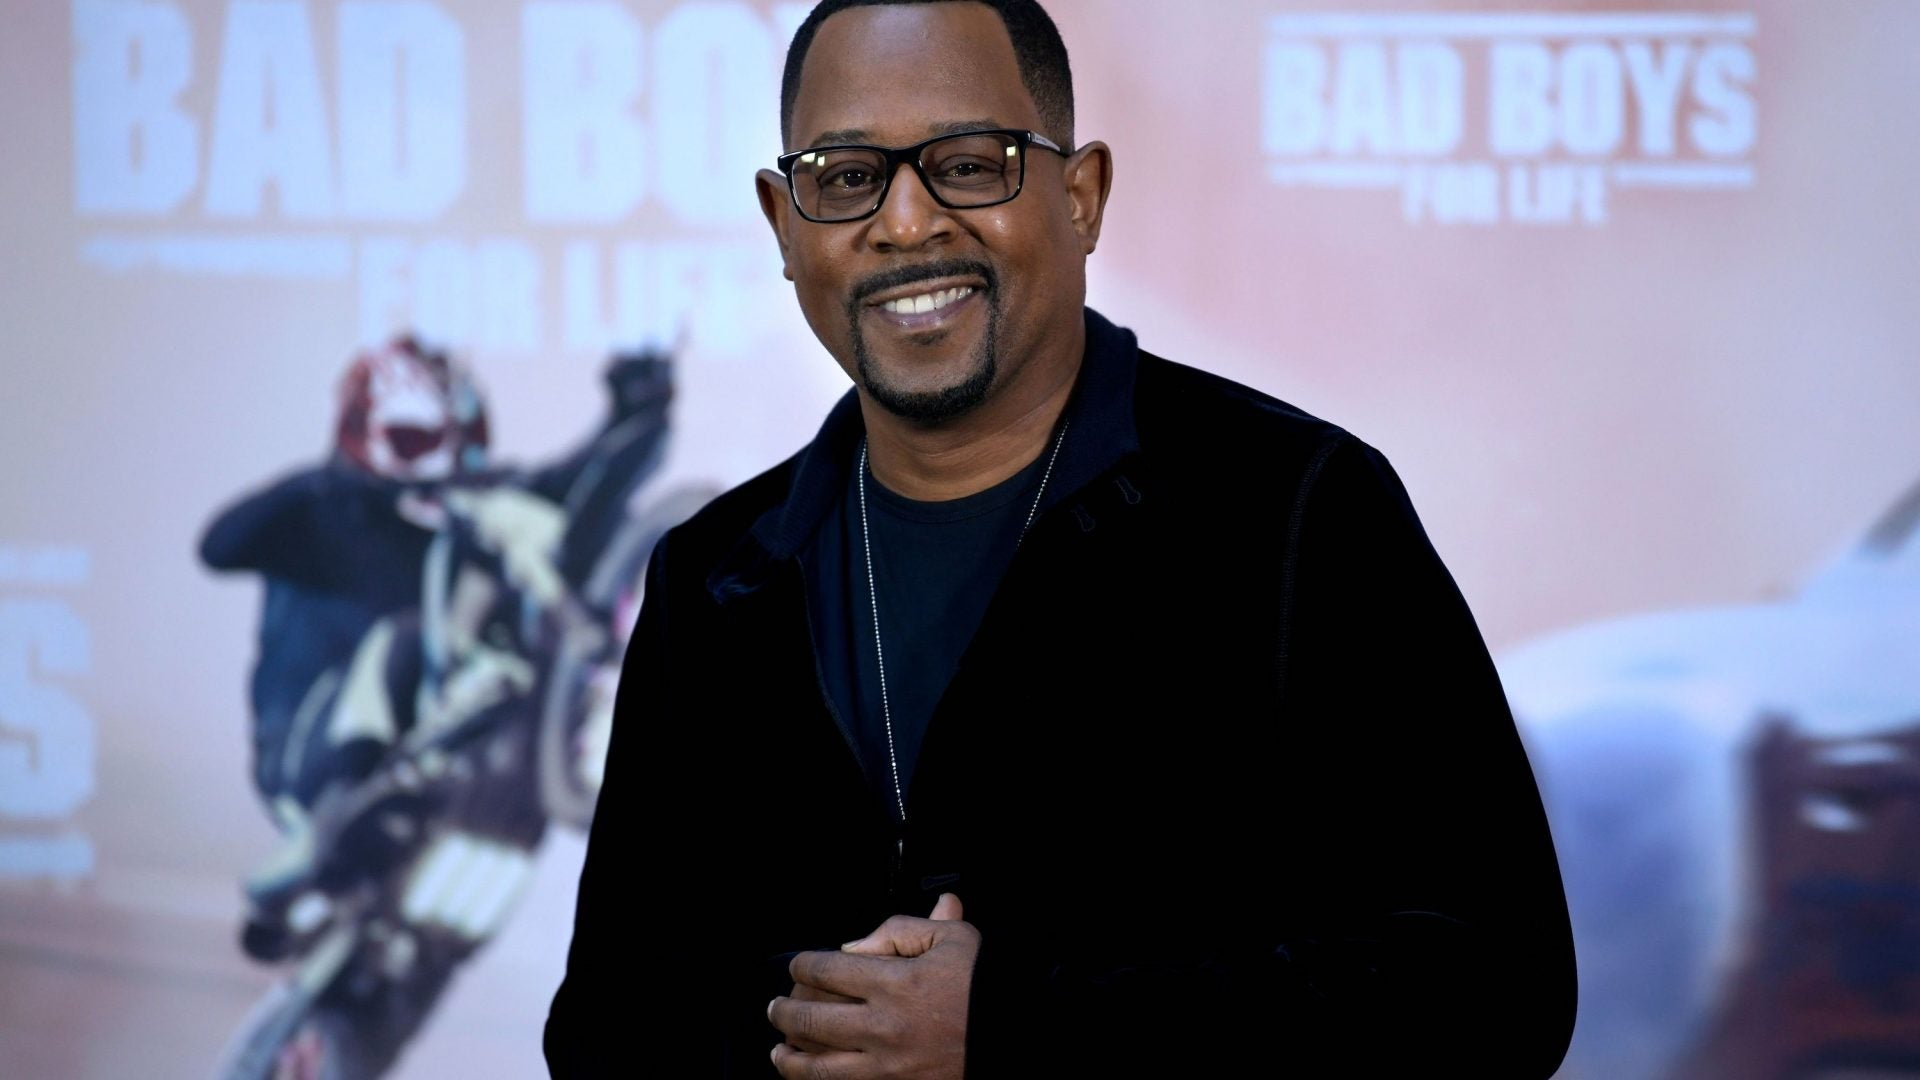 Martin Lawrence Finally Opens Up About Ending 'Martin' After 1997 Sexual Harassment Lawsuit